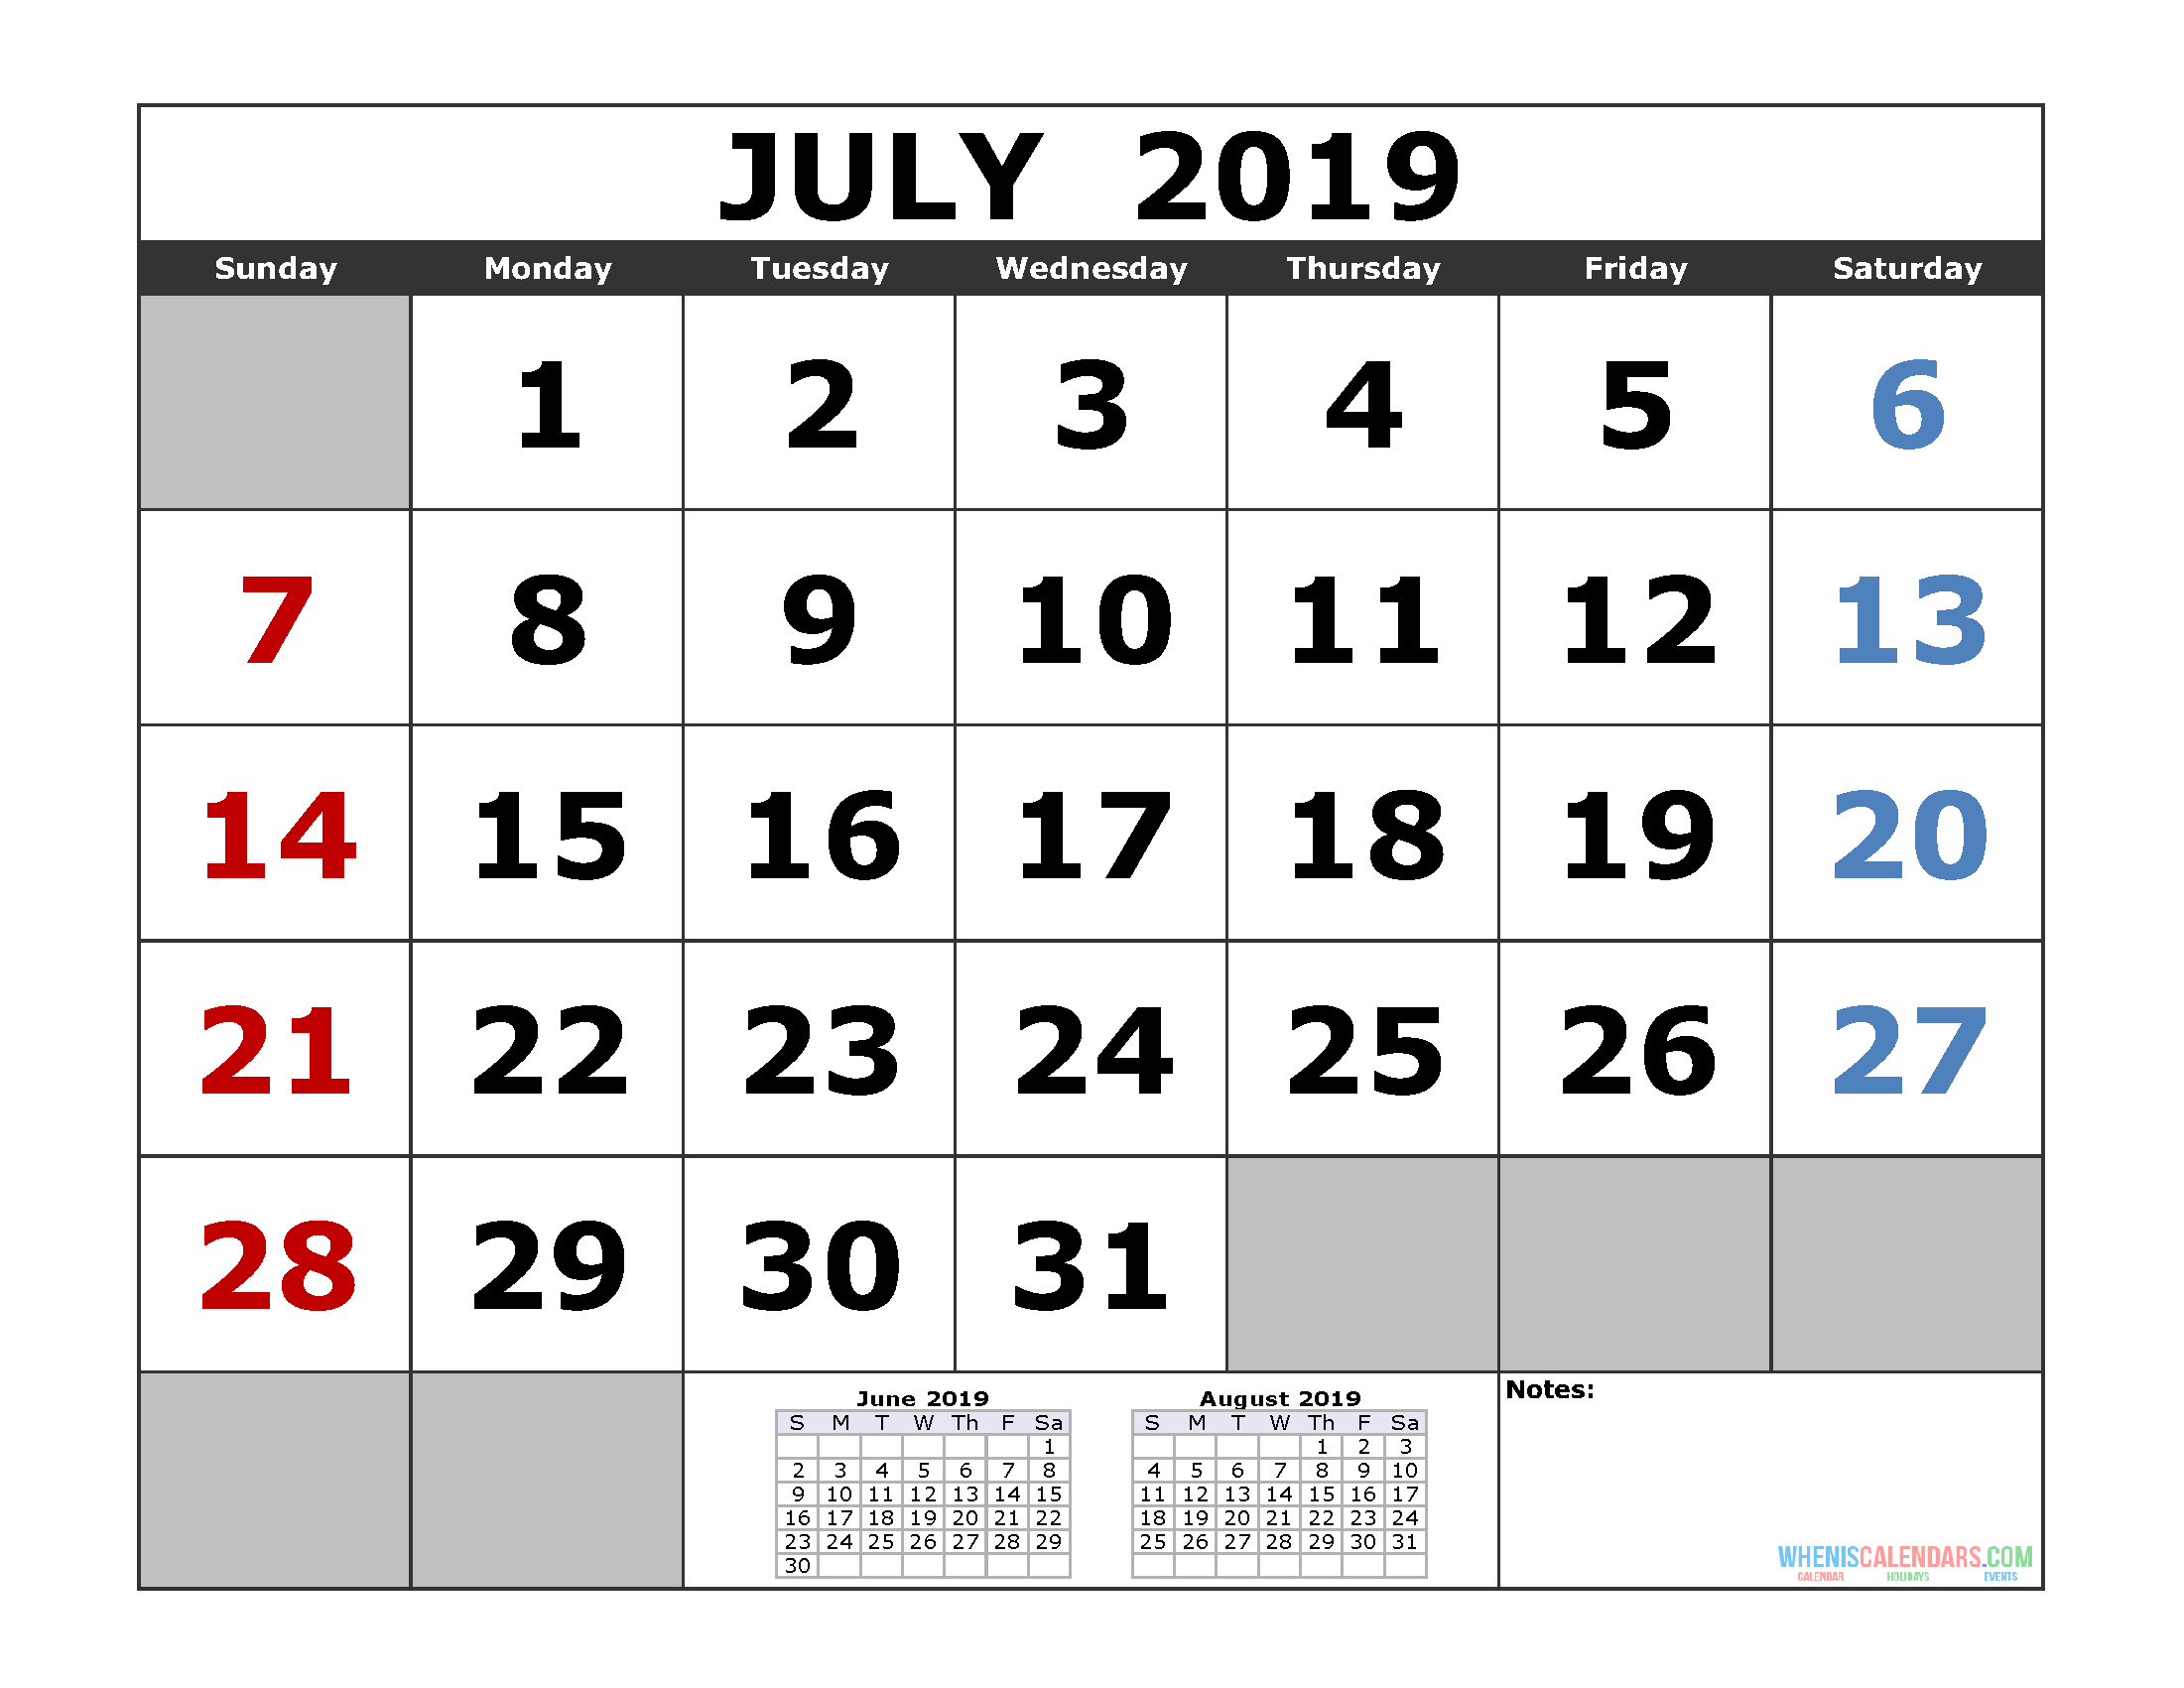 July 2019 Printable Calendar Template (3 Month Calendar) | Free June 7 2019 Calendar